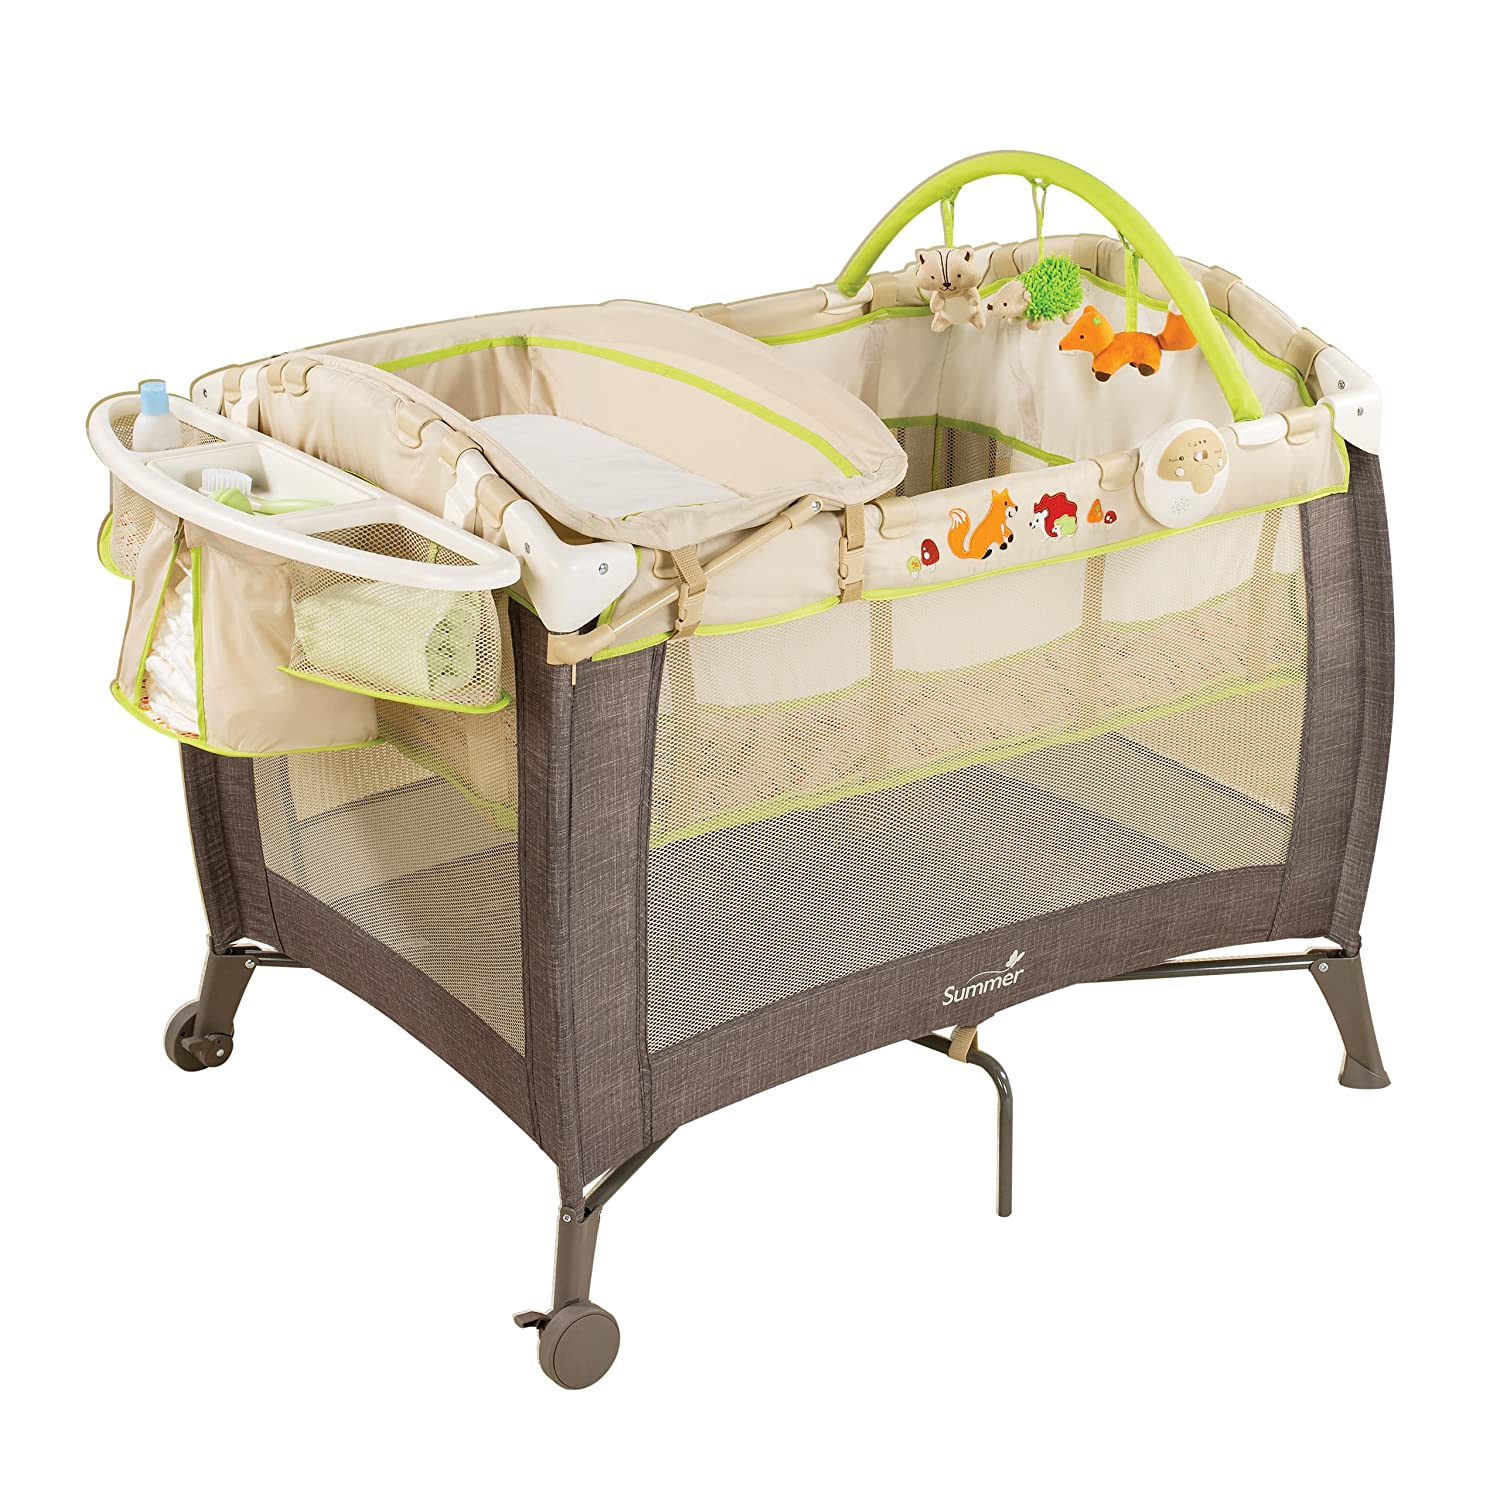 Amazon Summer Infant Grow with Me Playard and Changer Fox